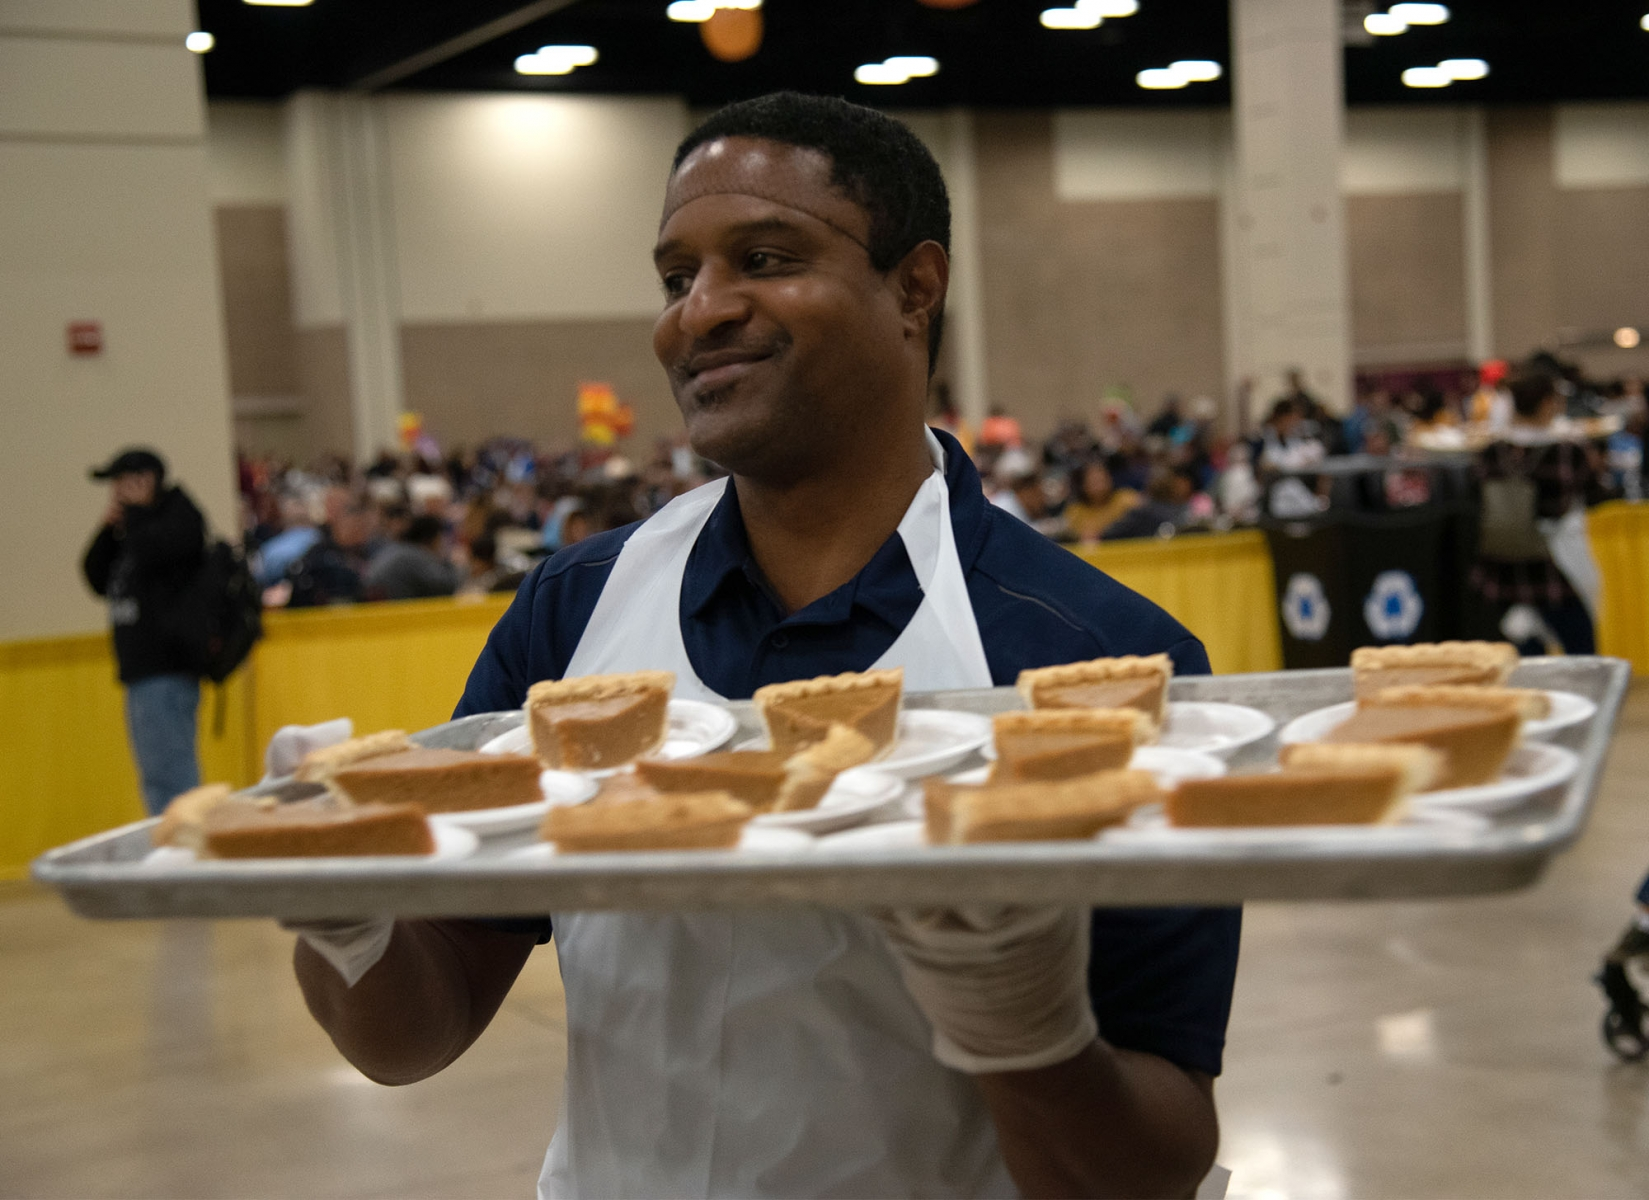 Volunteer Darius Dunn carries a tray of pumpkin pie during the Raul Jimenez Thanksgiving Dinner Thursday at the Henry B. Gonzalez Convention Center. <em><b>Photo by V.Finster | Heron</b></em>